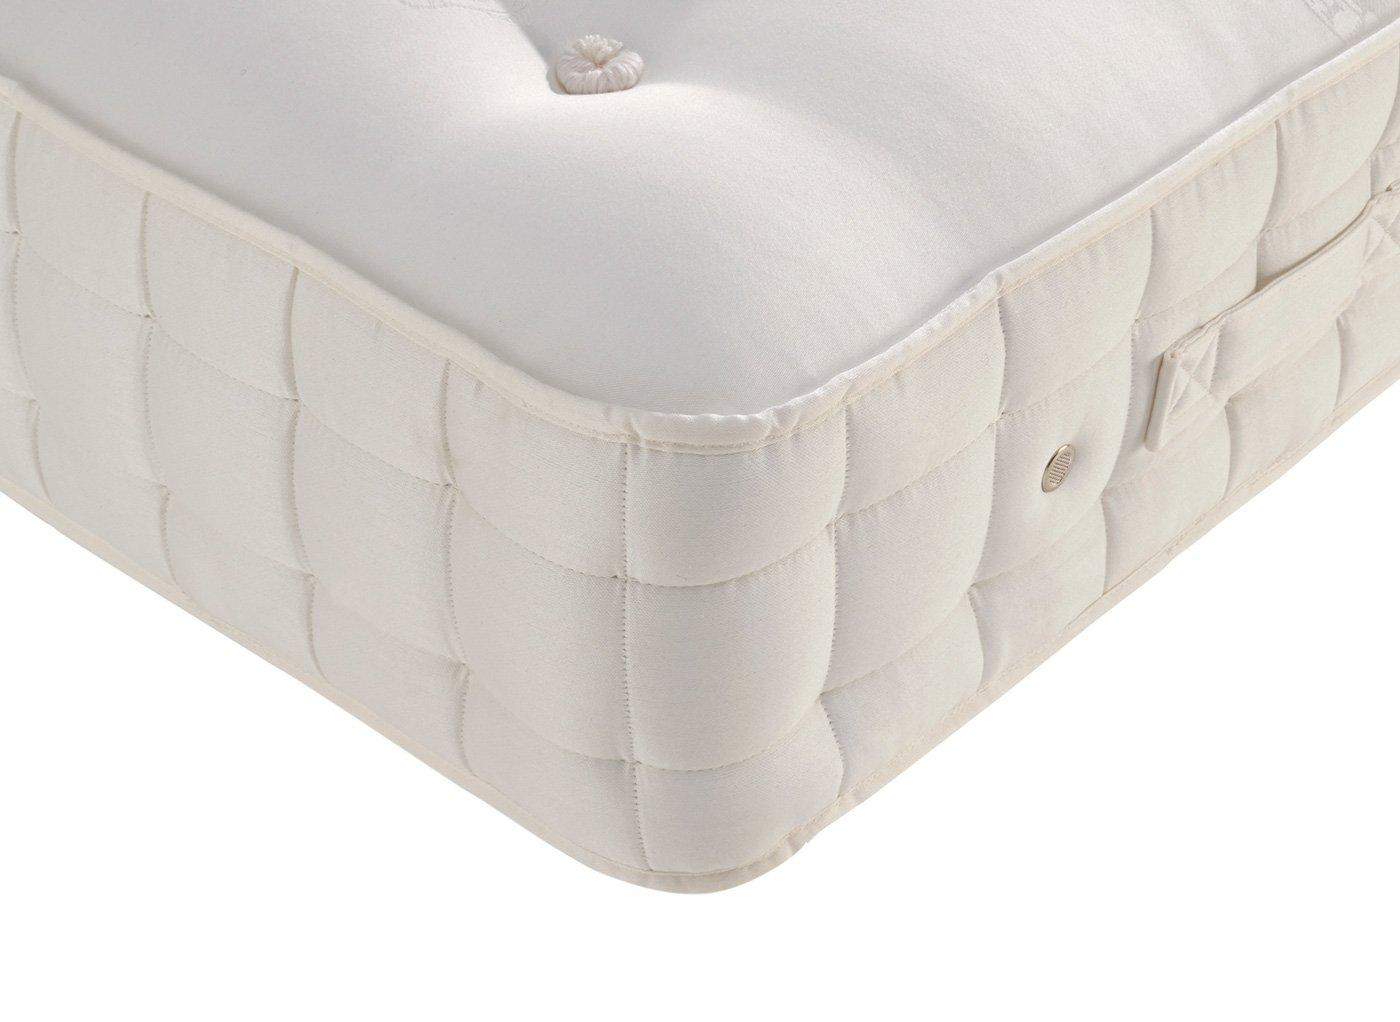 hypnos-hanson-pocket-sprung-mattress